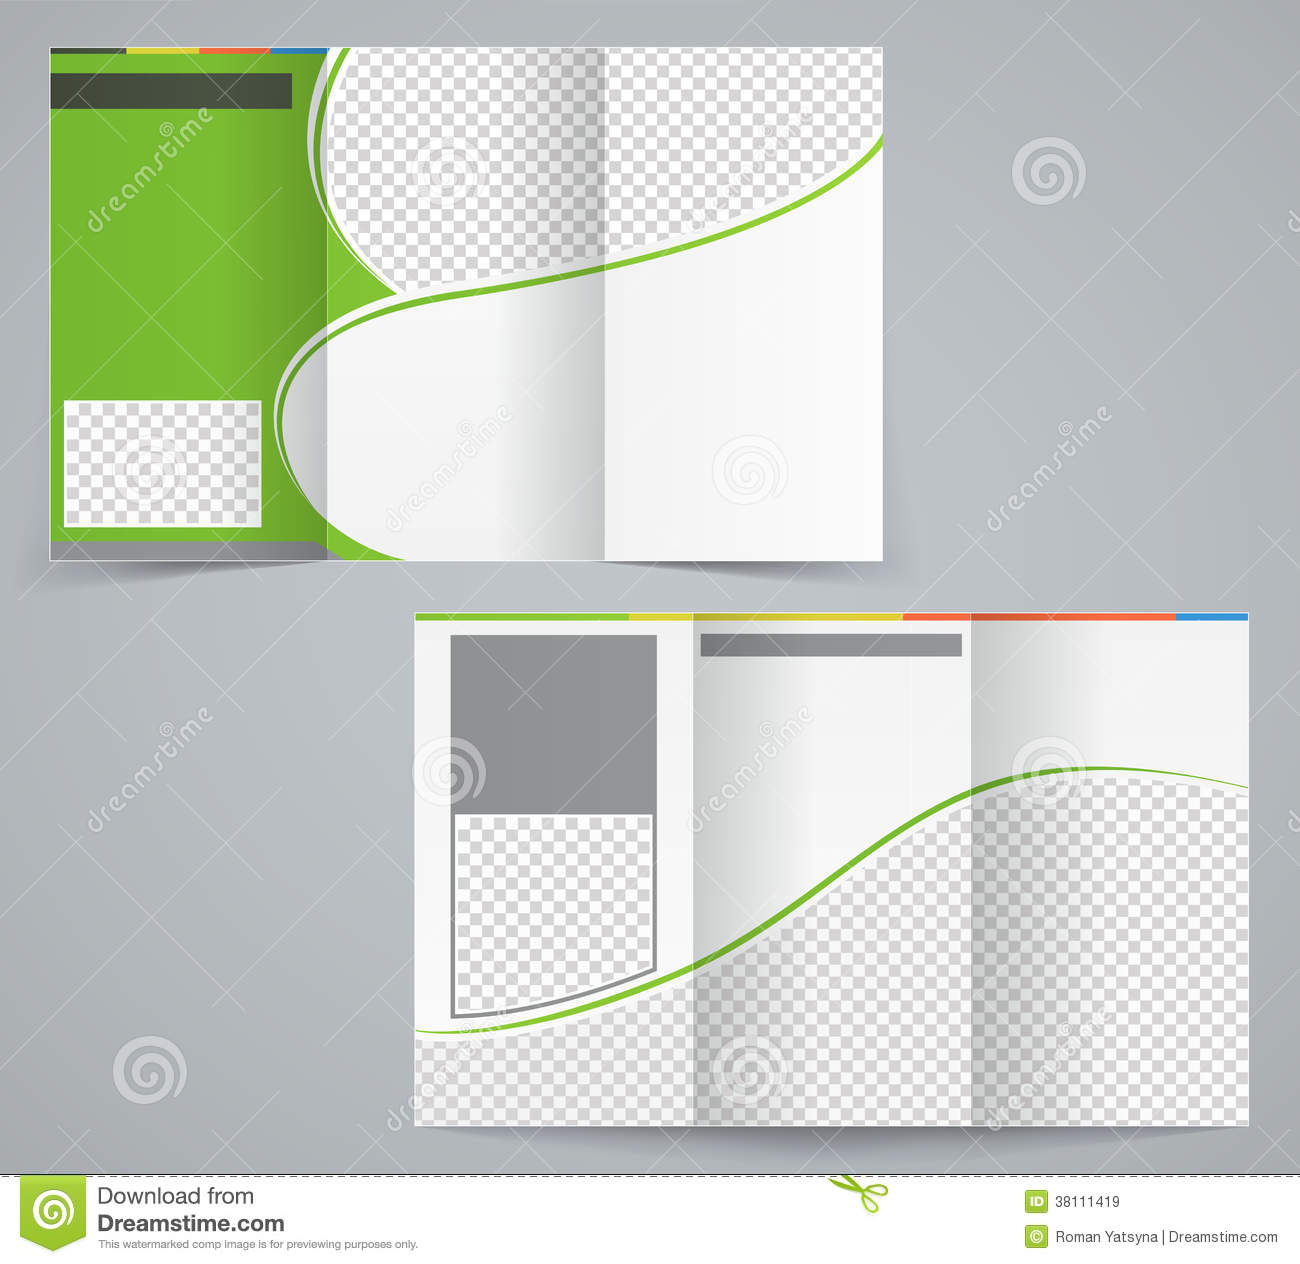 tri fold brochure templates free download - tri fold business brochure template vector green royalty